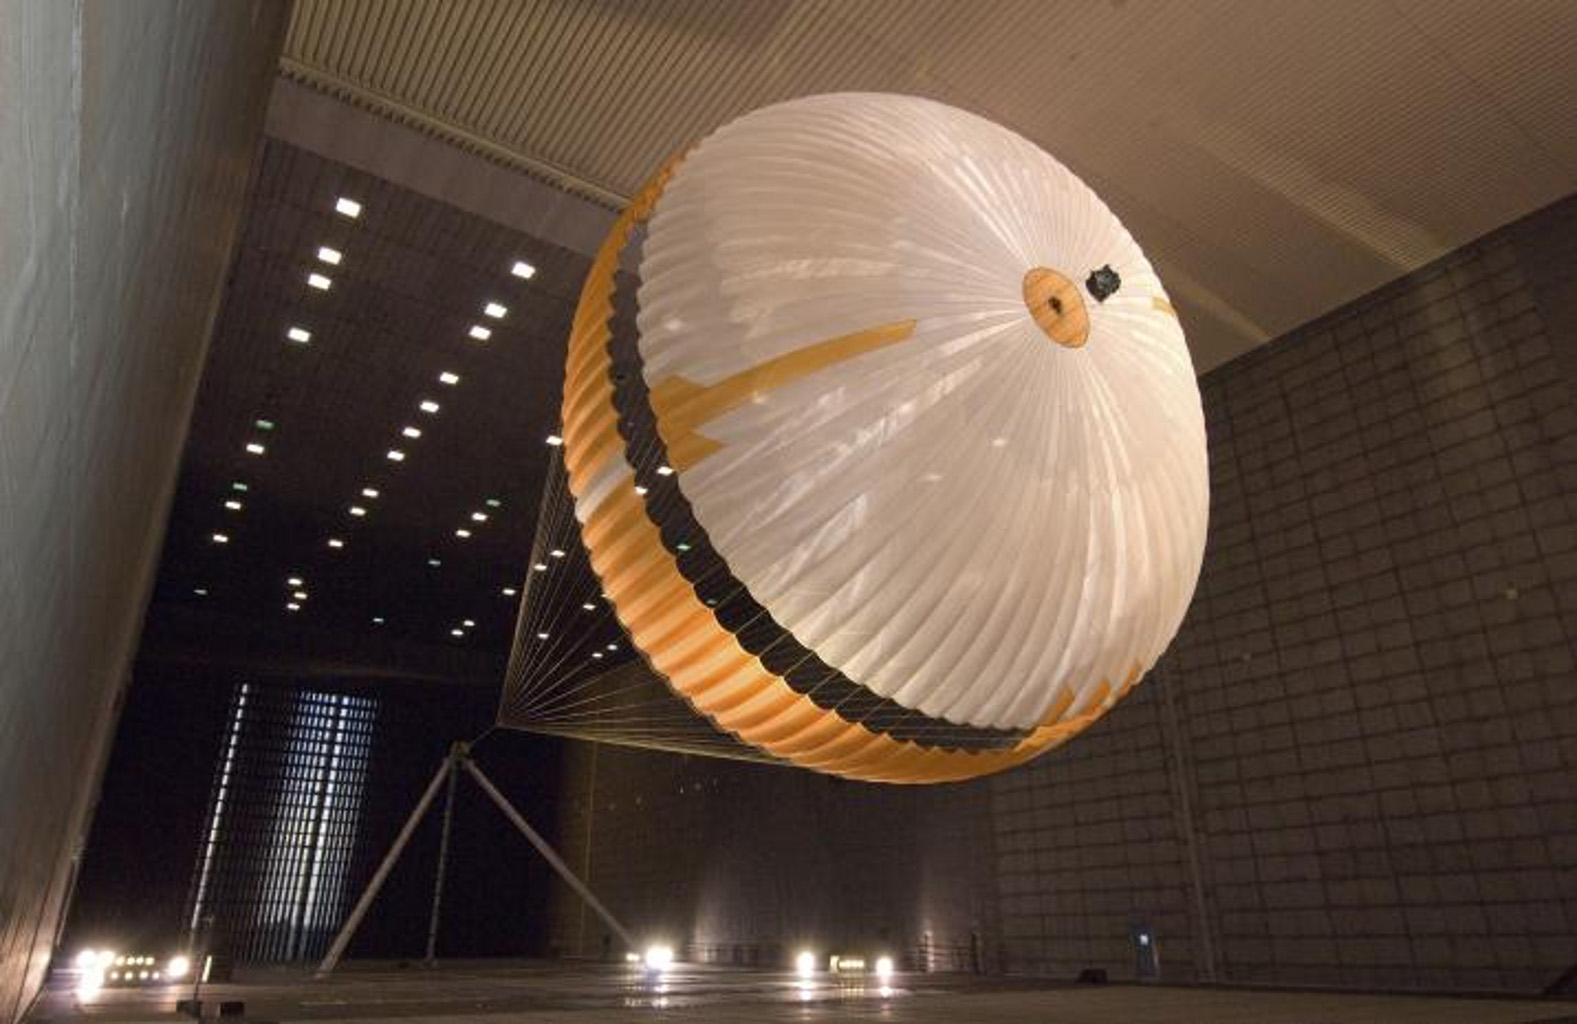 Space Images | Mars Parachute Testing in World's Largest ...